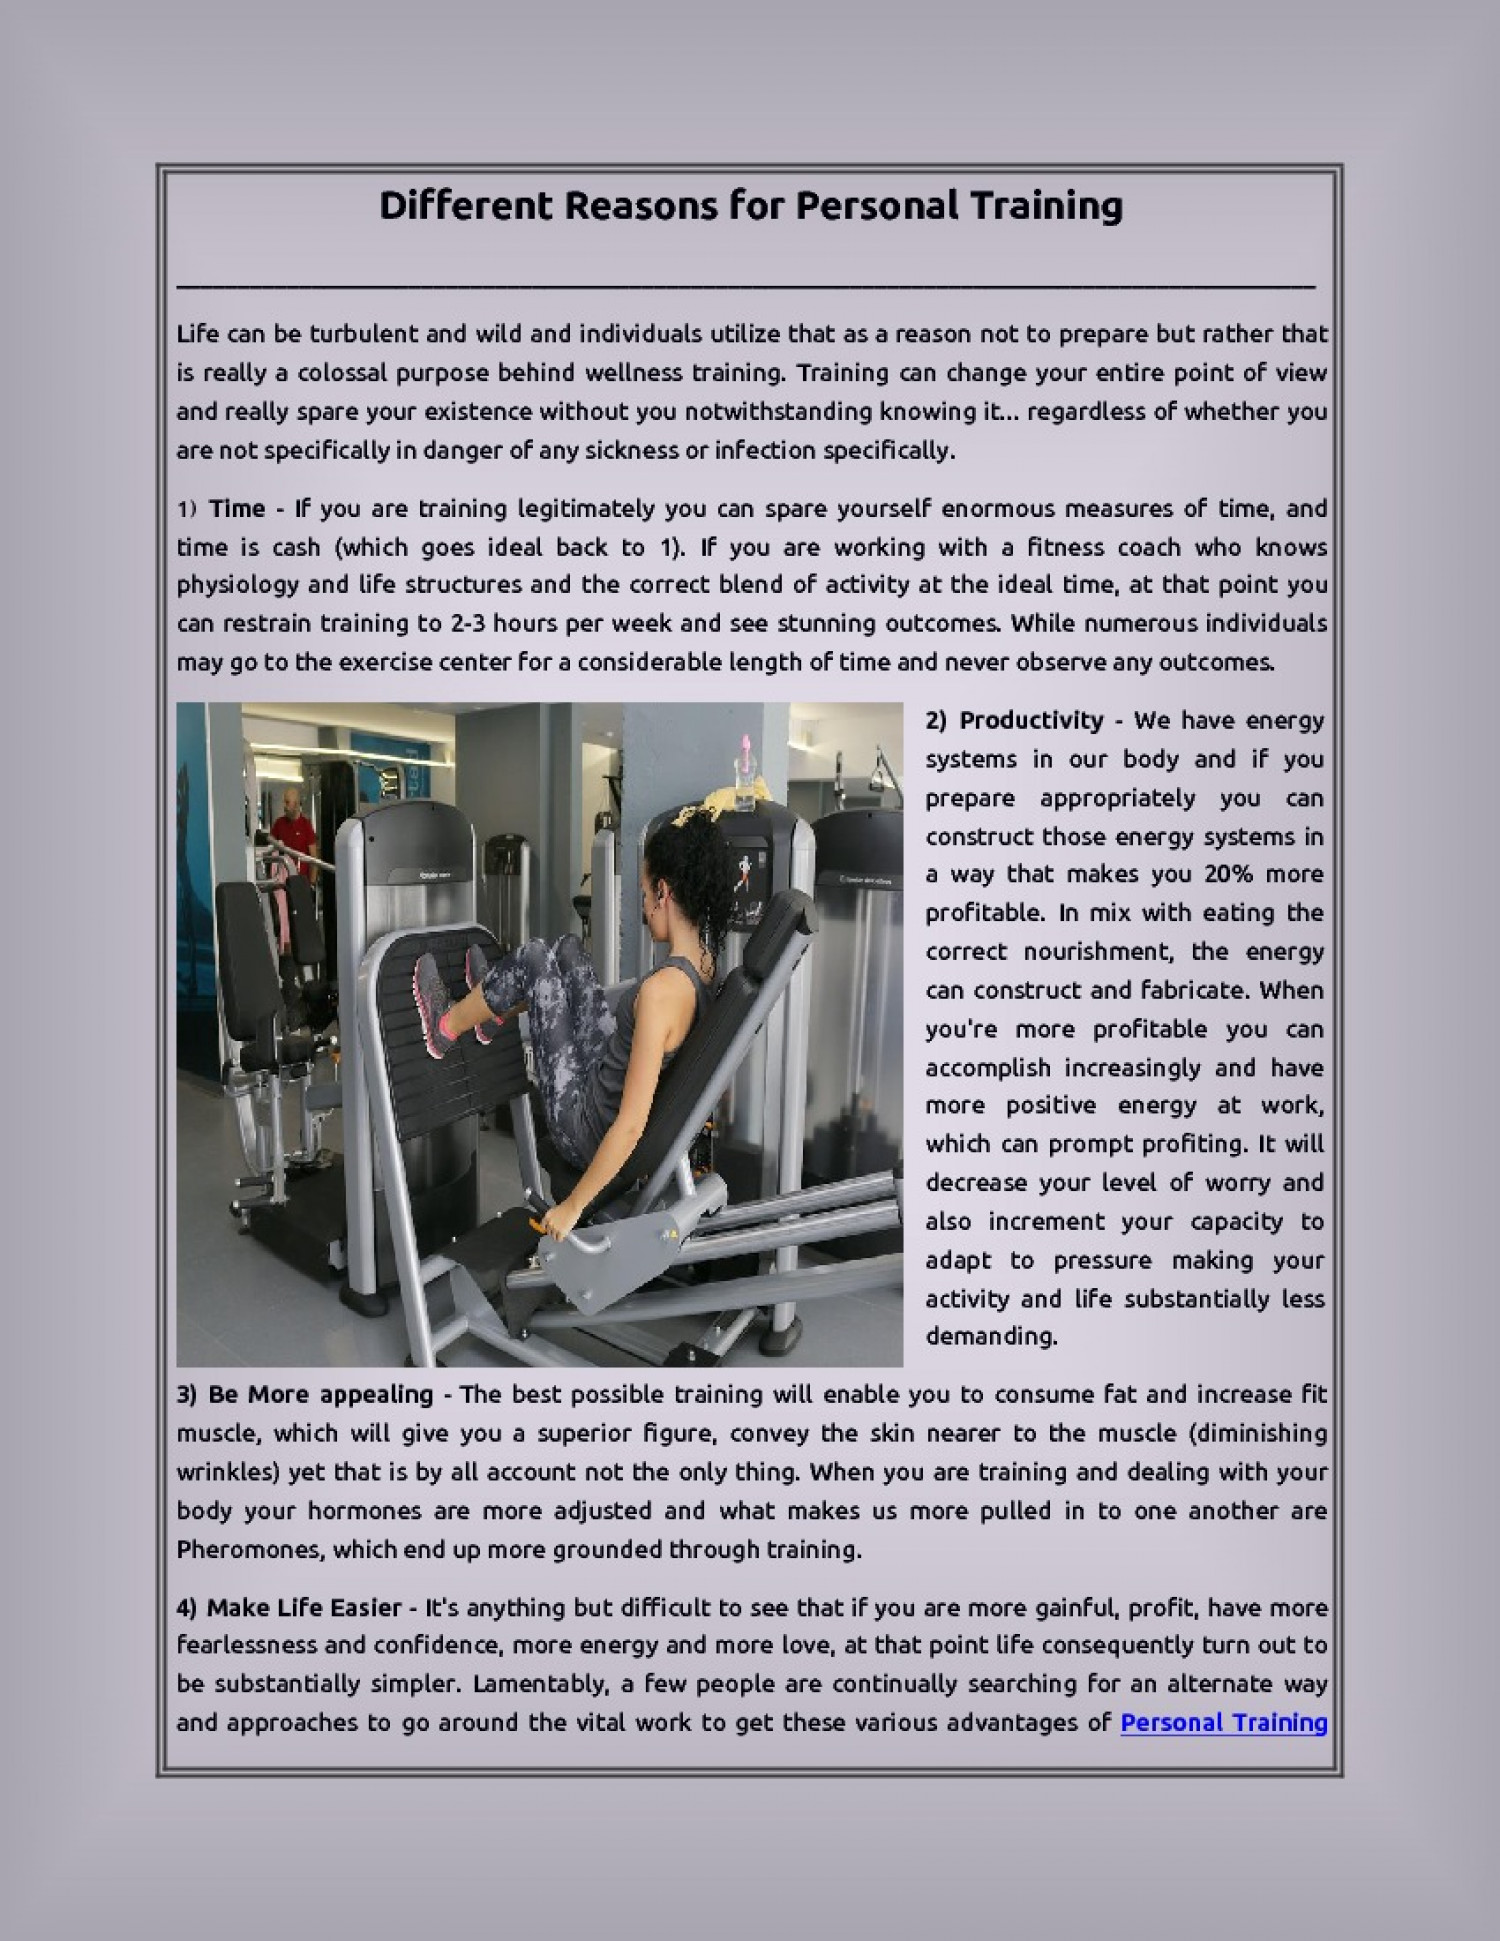 Different Reasons for Personal Training Infographic